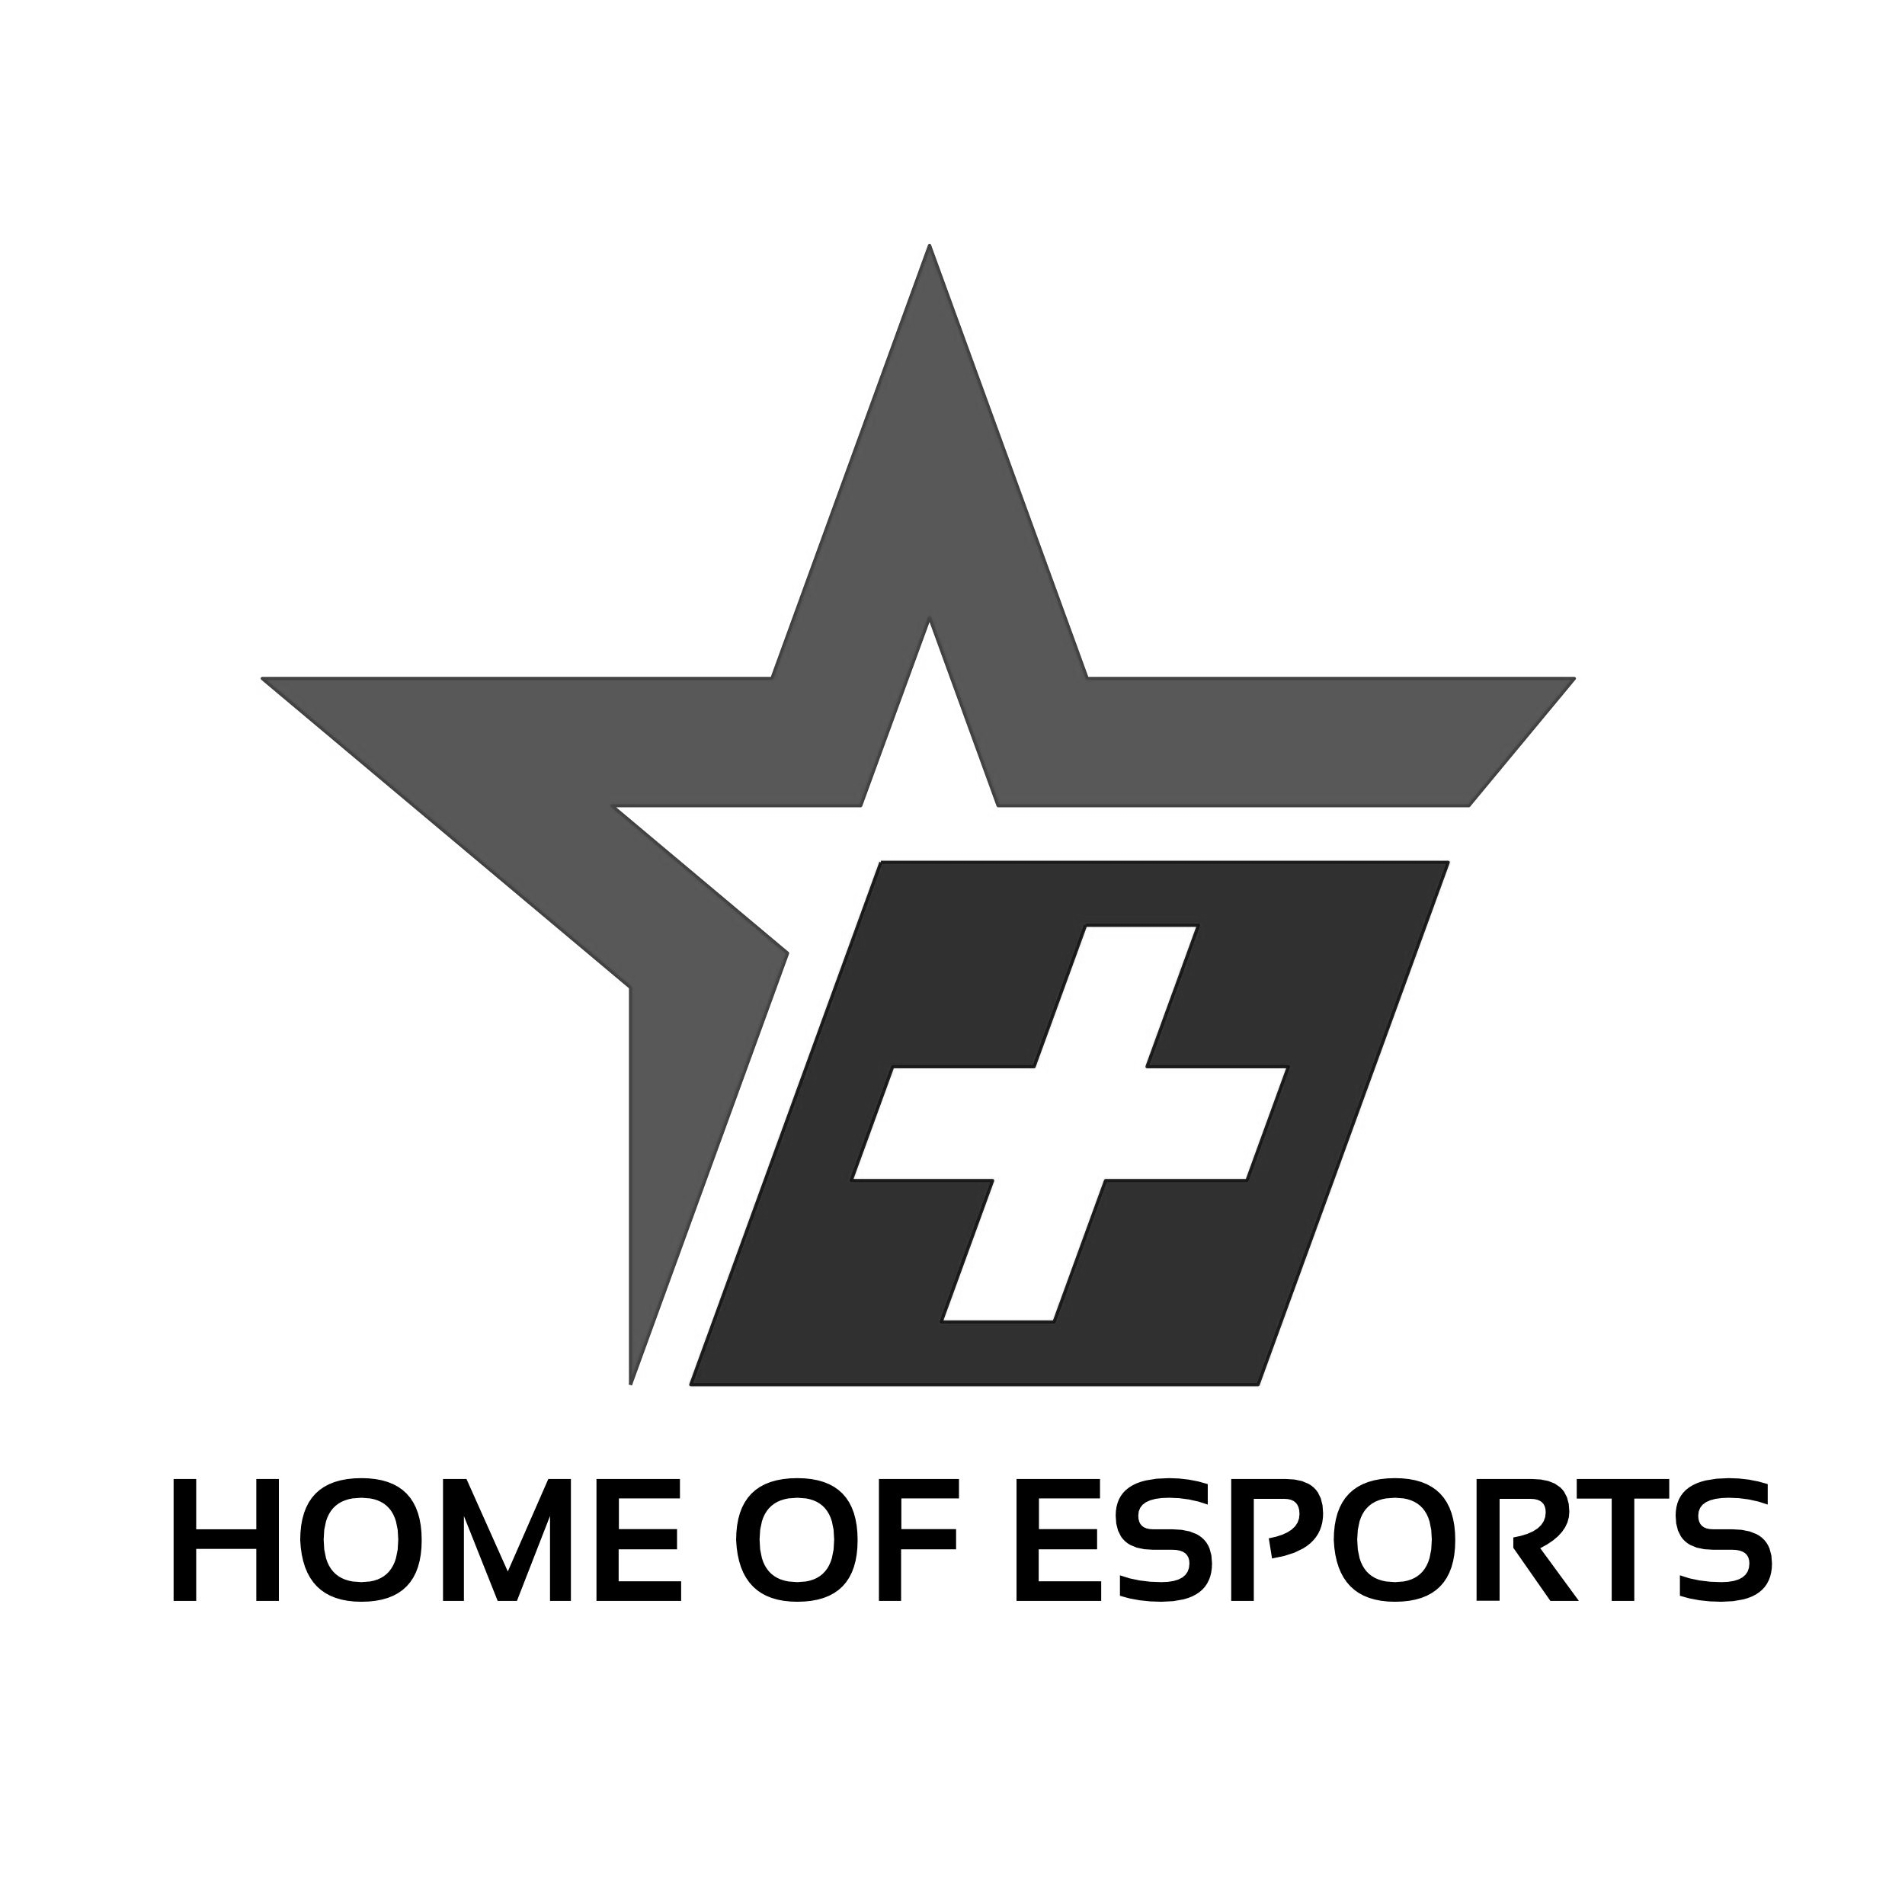 HOME OF ESPORTS